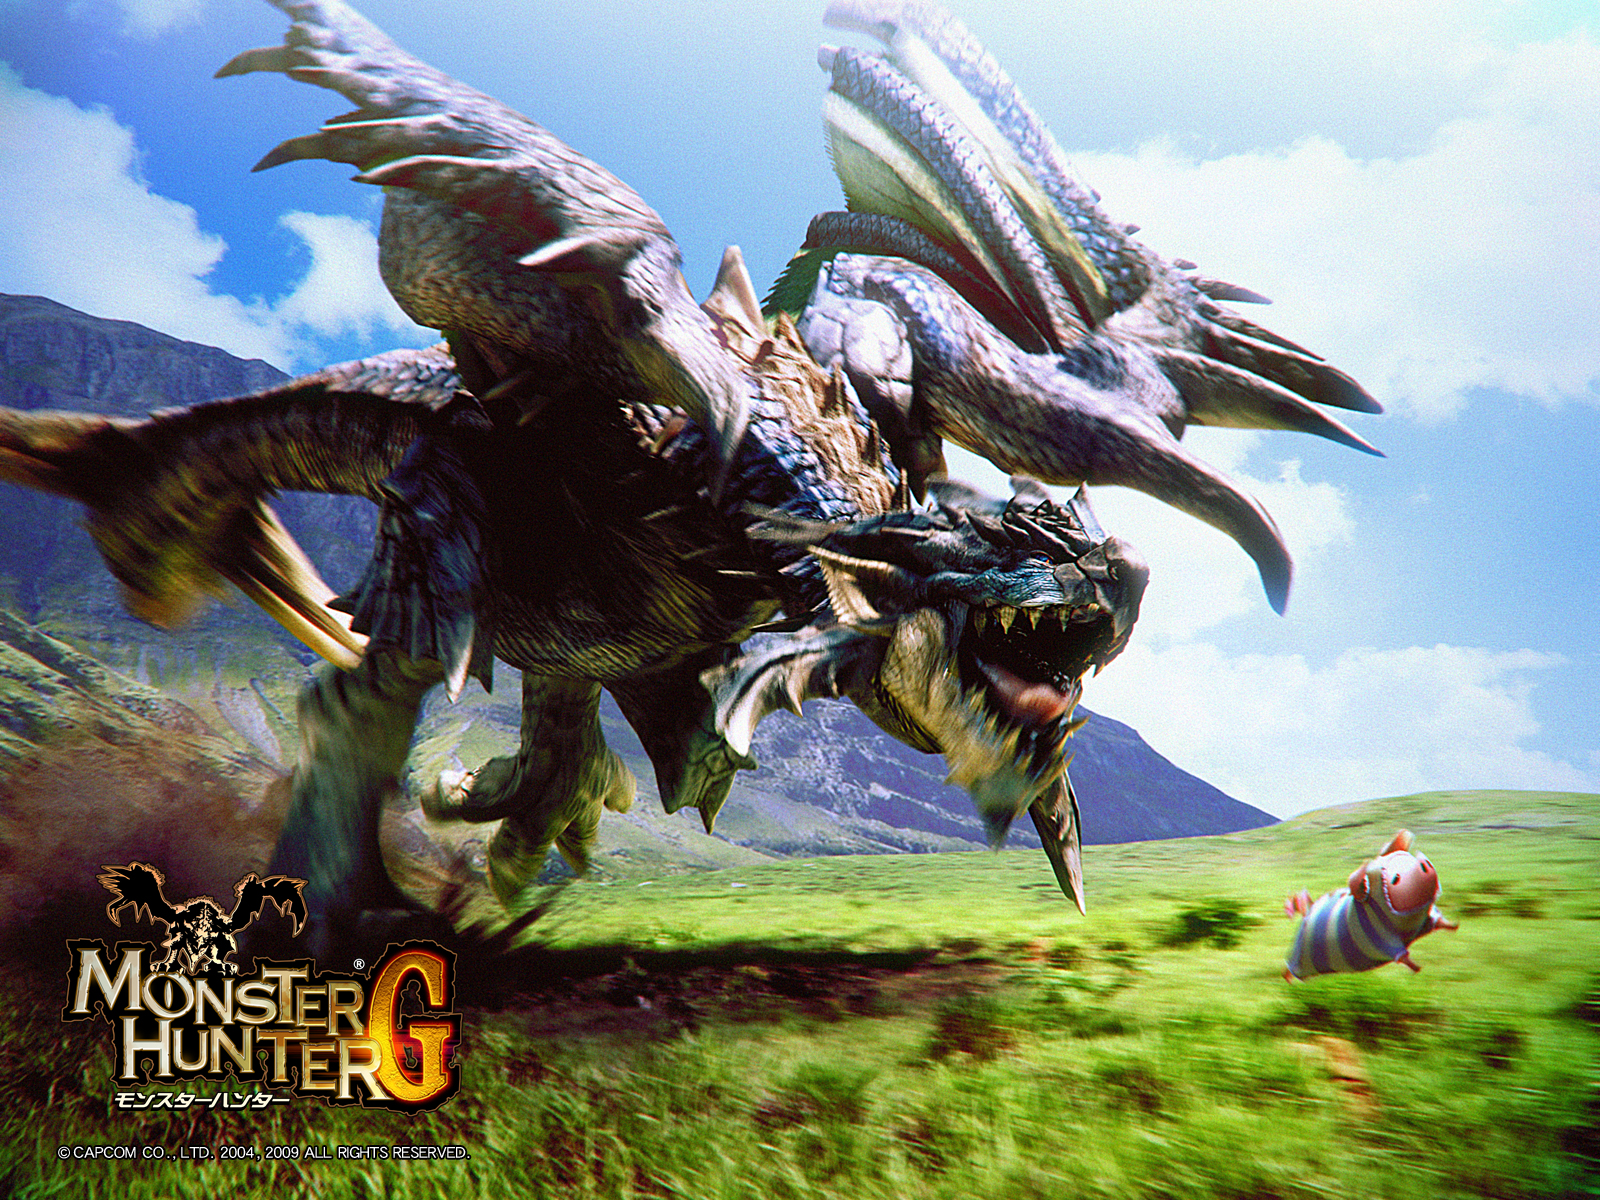 http://wallpapers.latestscreens.com/1600x1200/monsterhunterg/monsterhunterg-01.jpg